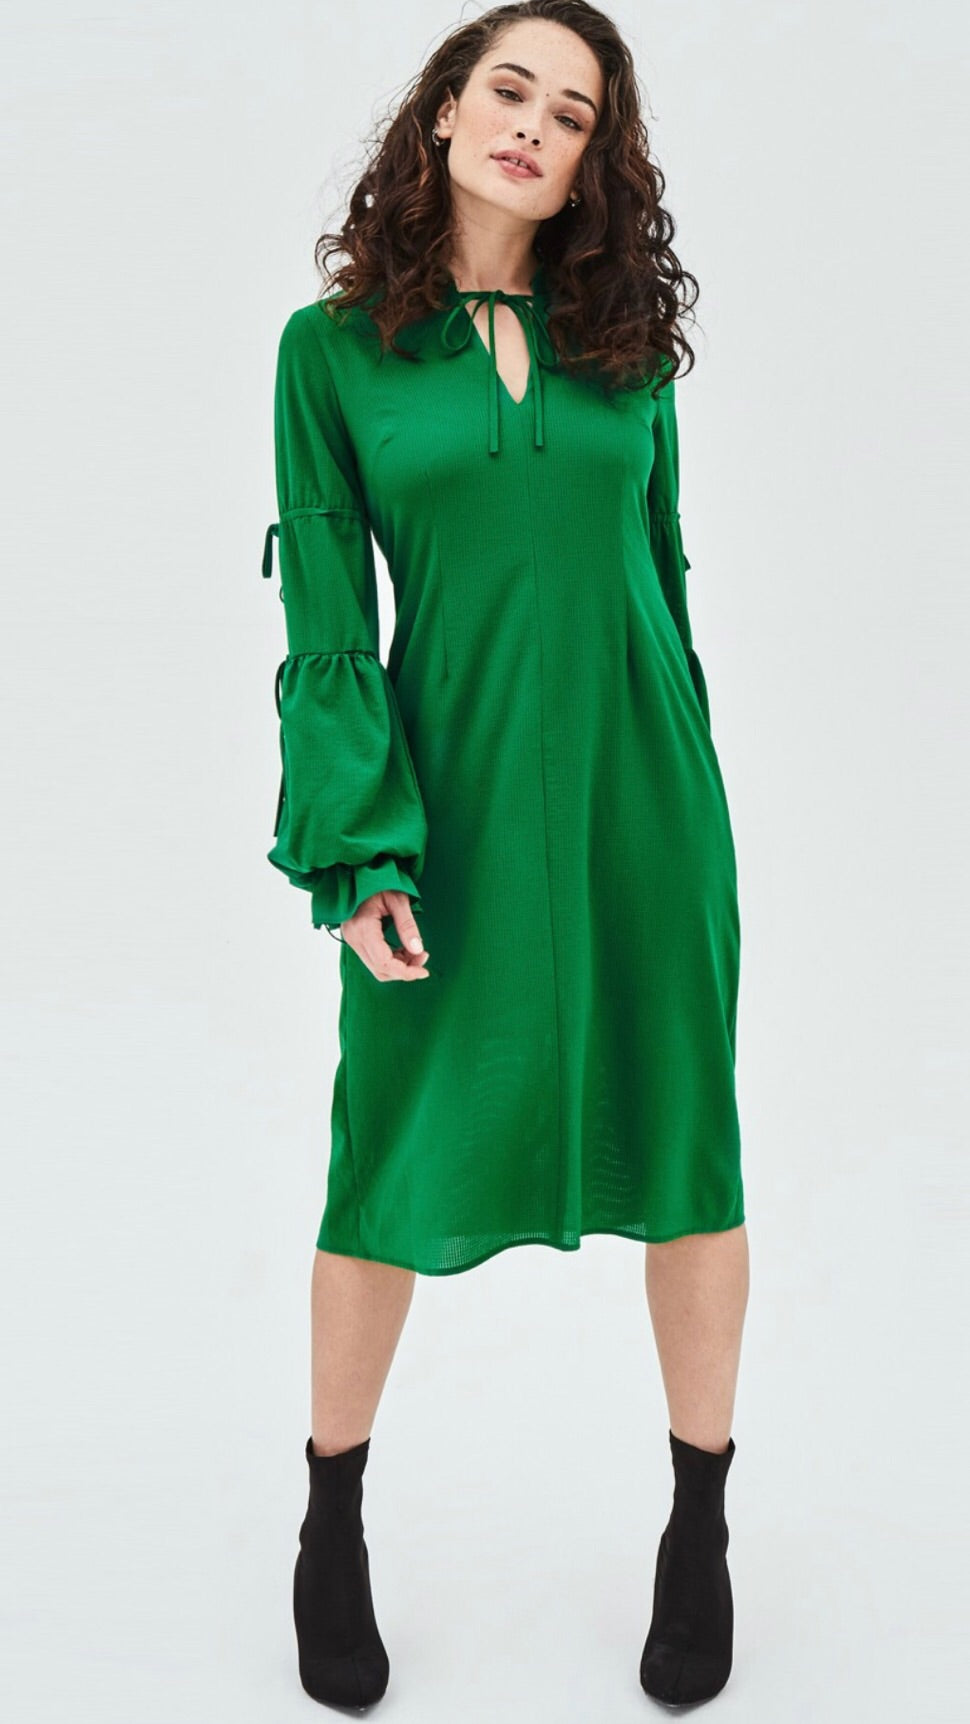 Elvi Green Tie Dress